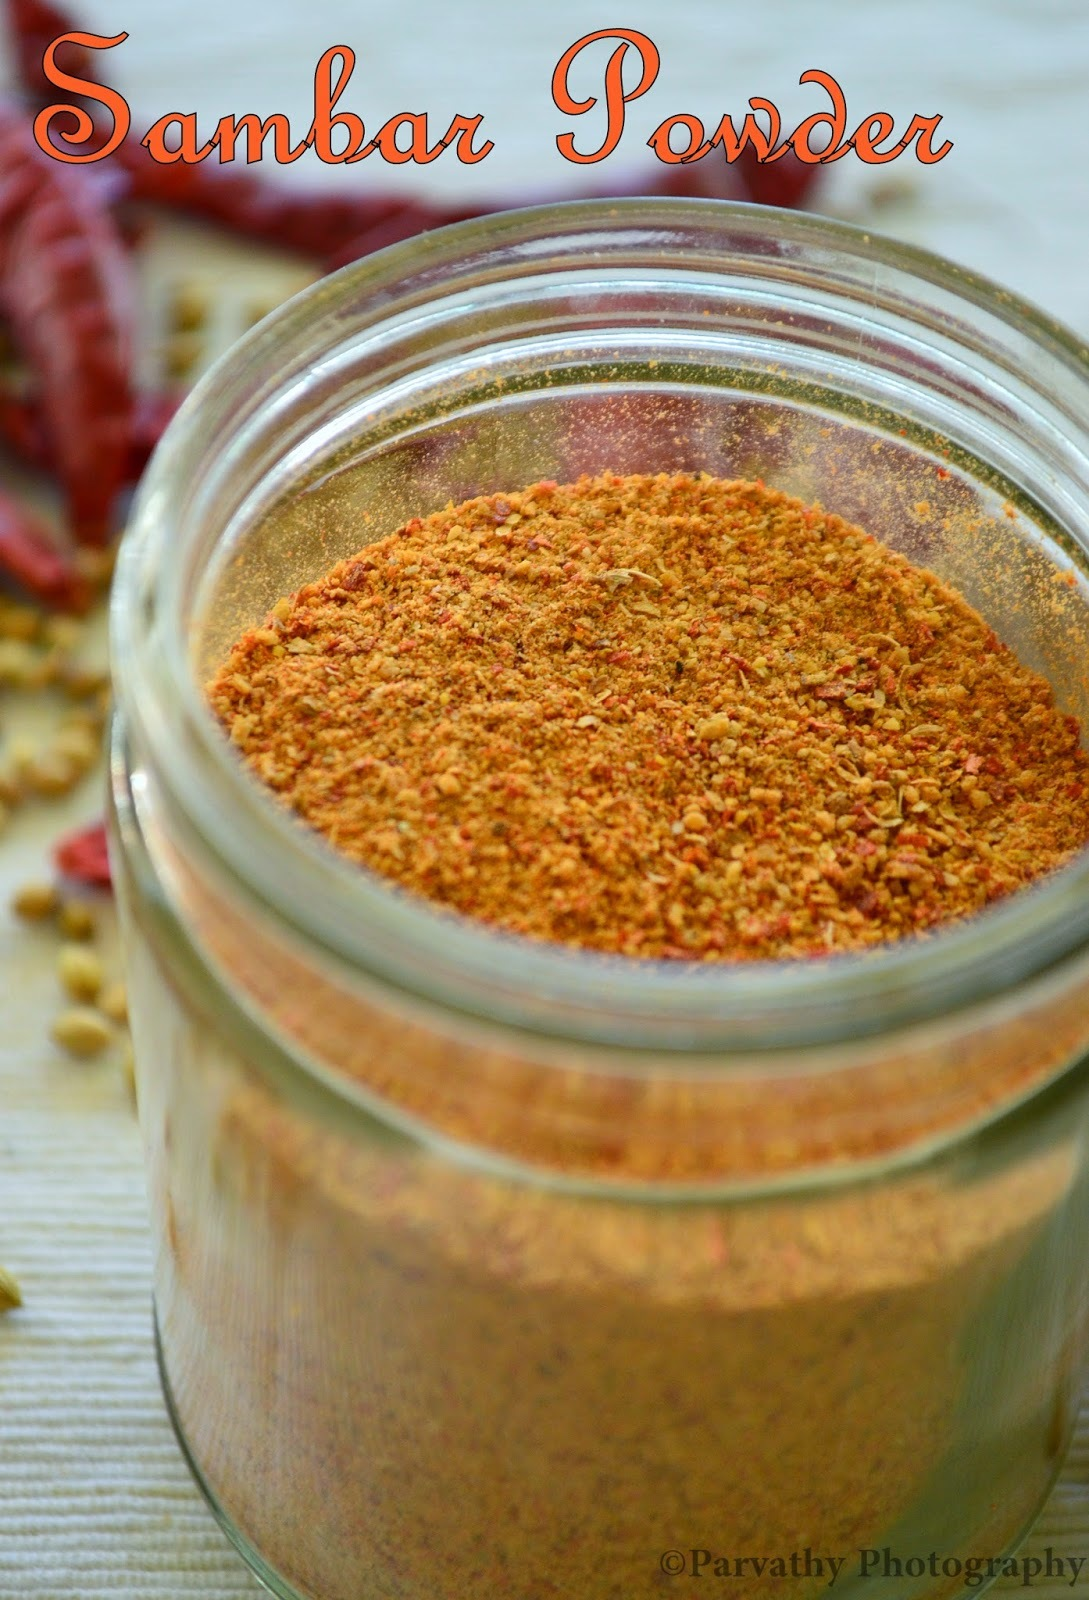 Sambar Powder Recipe | How to make Sambar Powder | Home-Made Sambar Powder Recipe